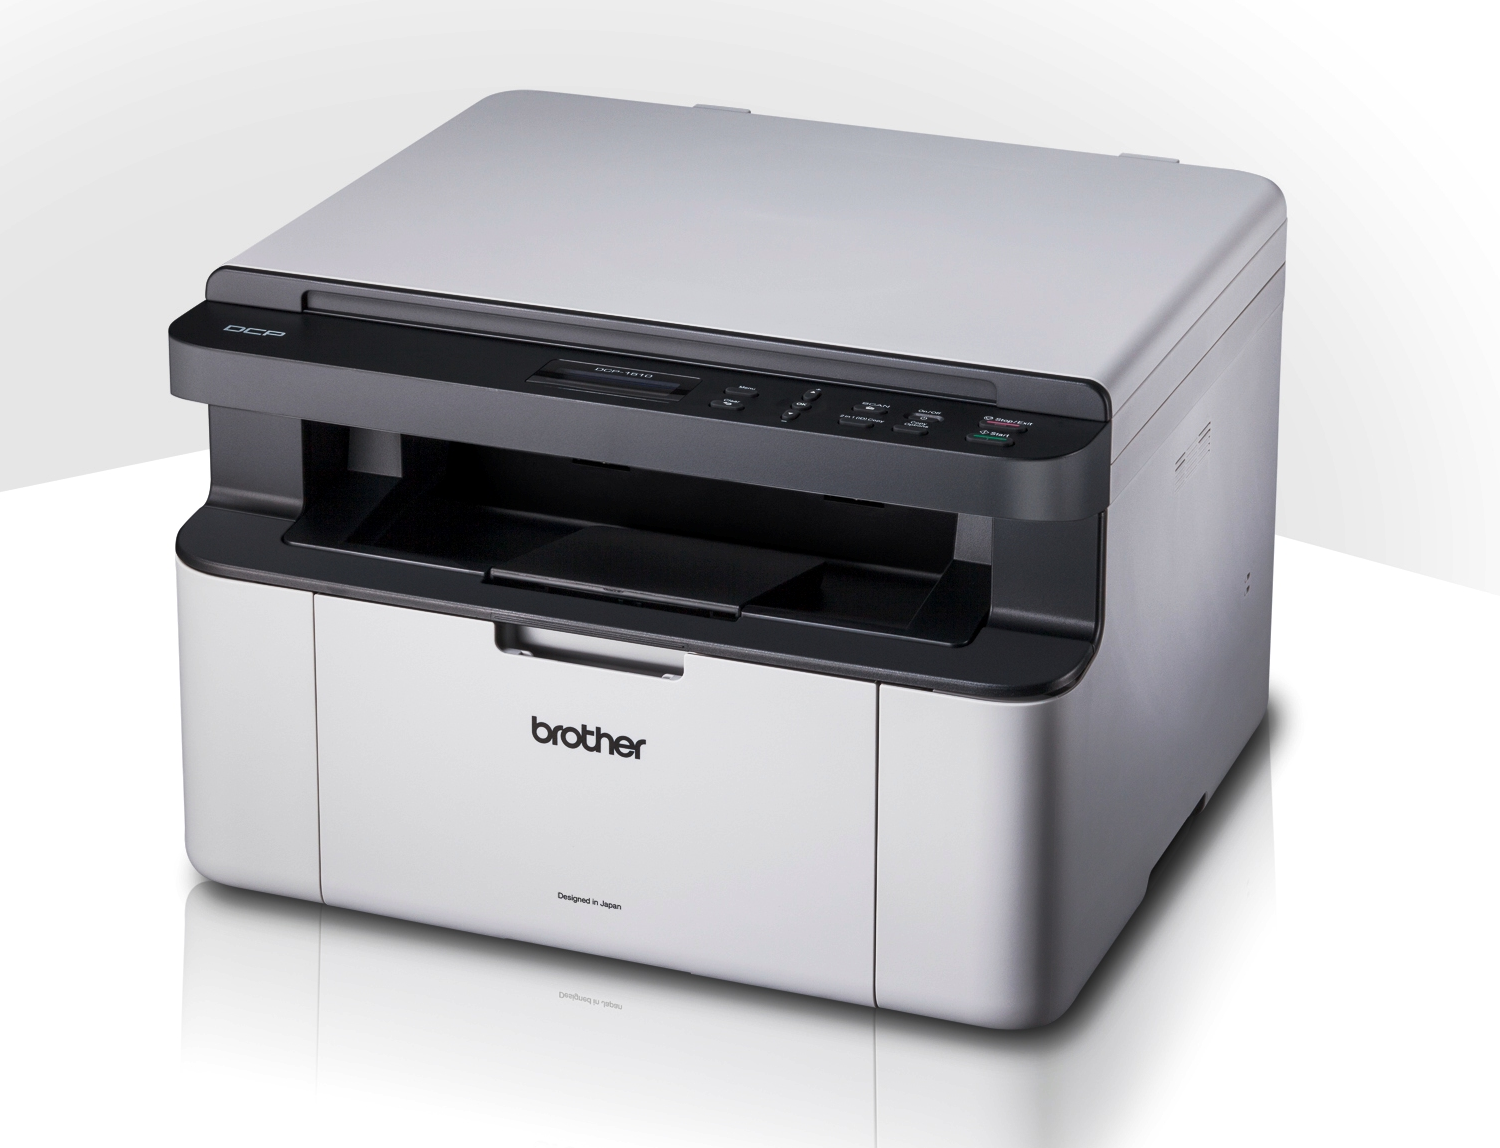 Brother multi-function printer